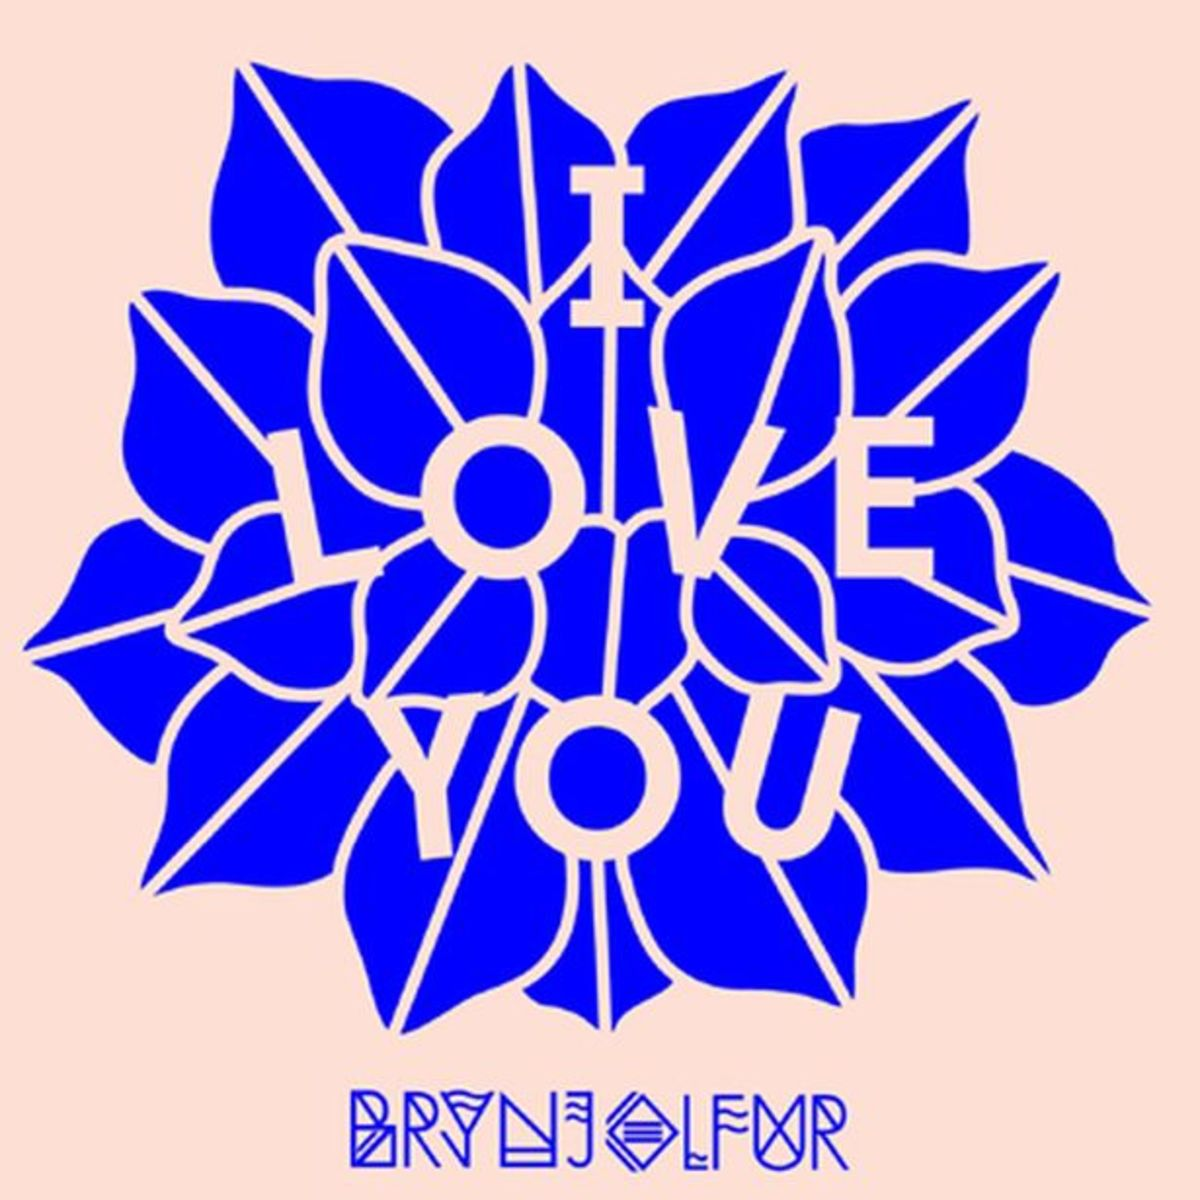 EDM News: Listen to Brynjolfur's EP I Love You - File Under Slow Motion Disco Burn